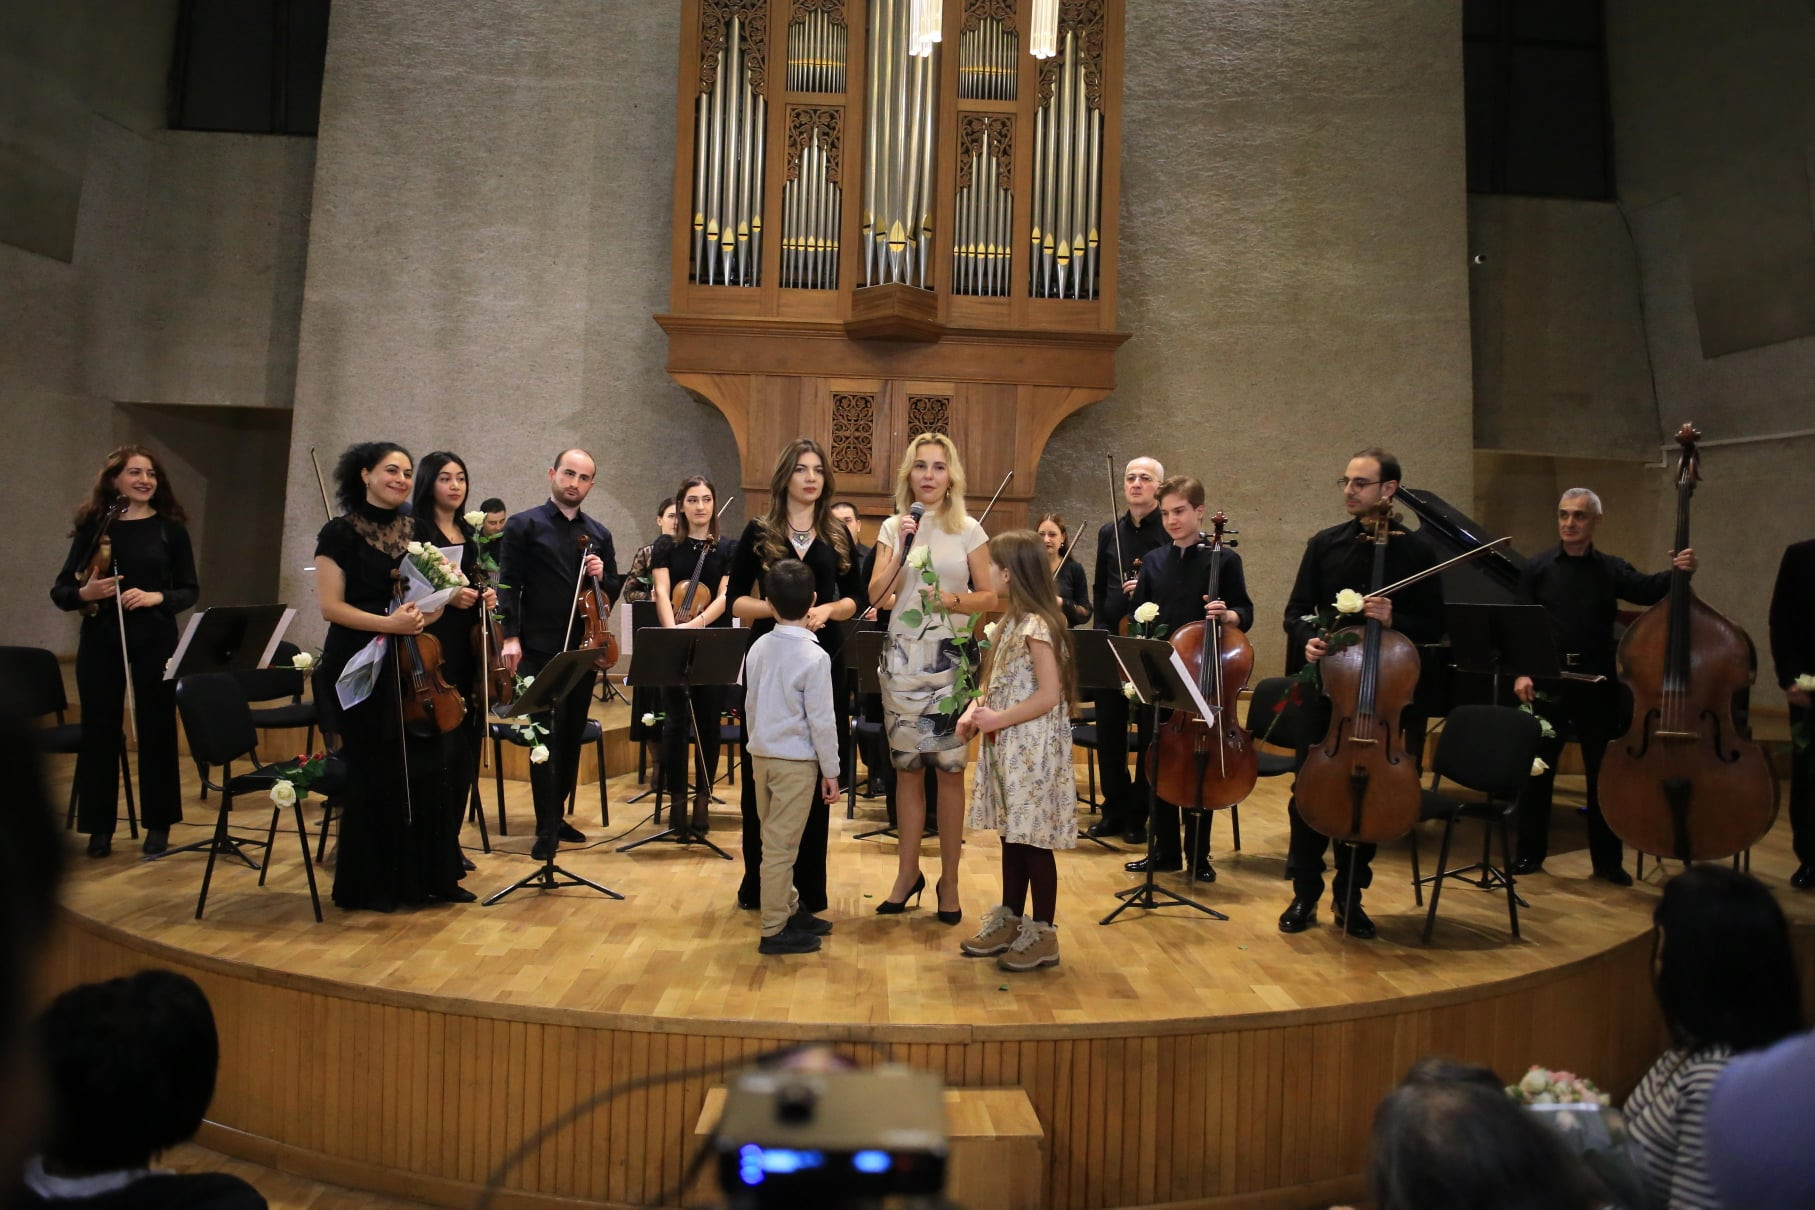 ''Polish Days in Armenia'' program concluded with a classical concert